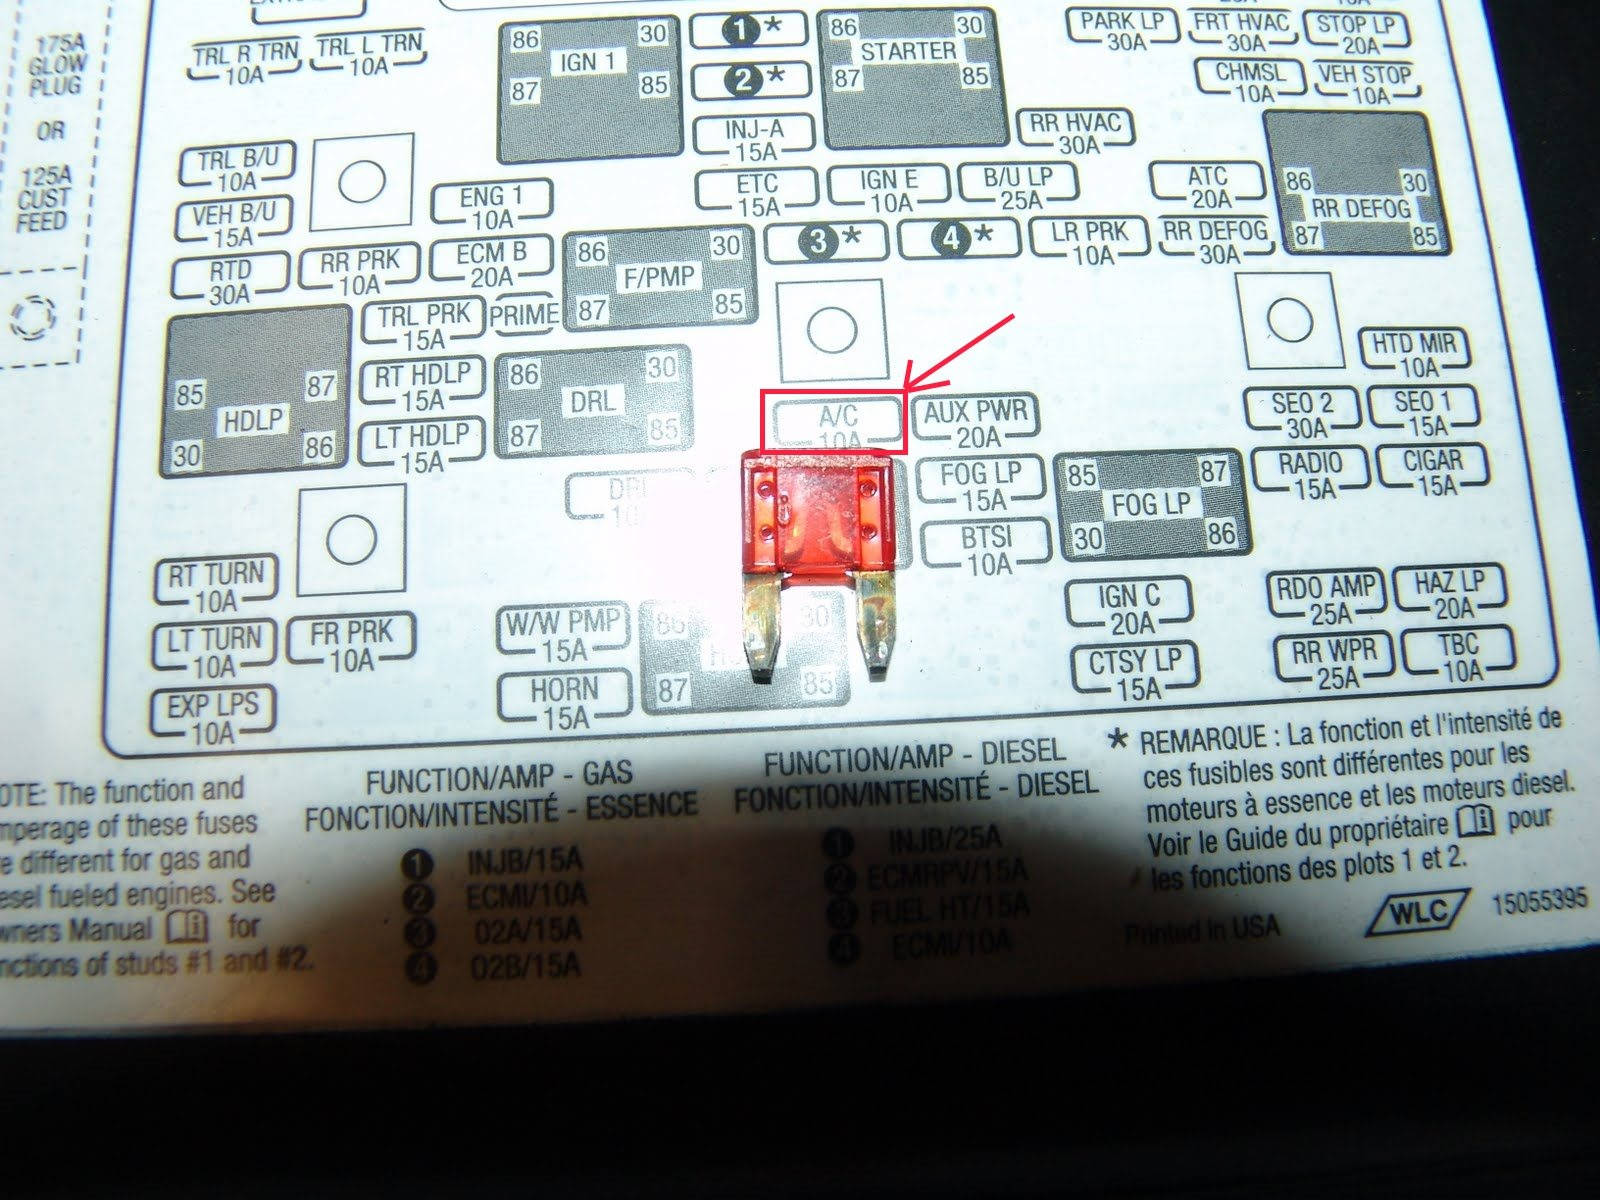 1995 Chevy Astro Van Fuse Panel Diagram Wiring Library 1990 Bmw 325i Box Under The Hood Is There A Second C Pump Not Working